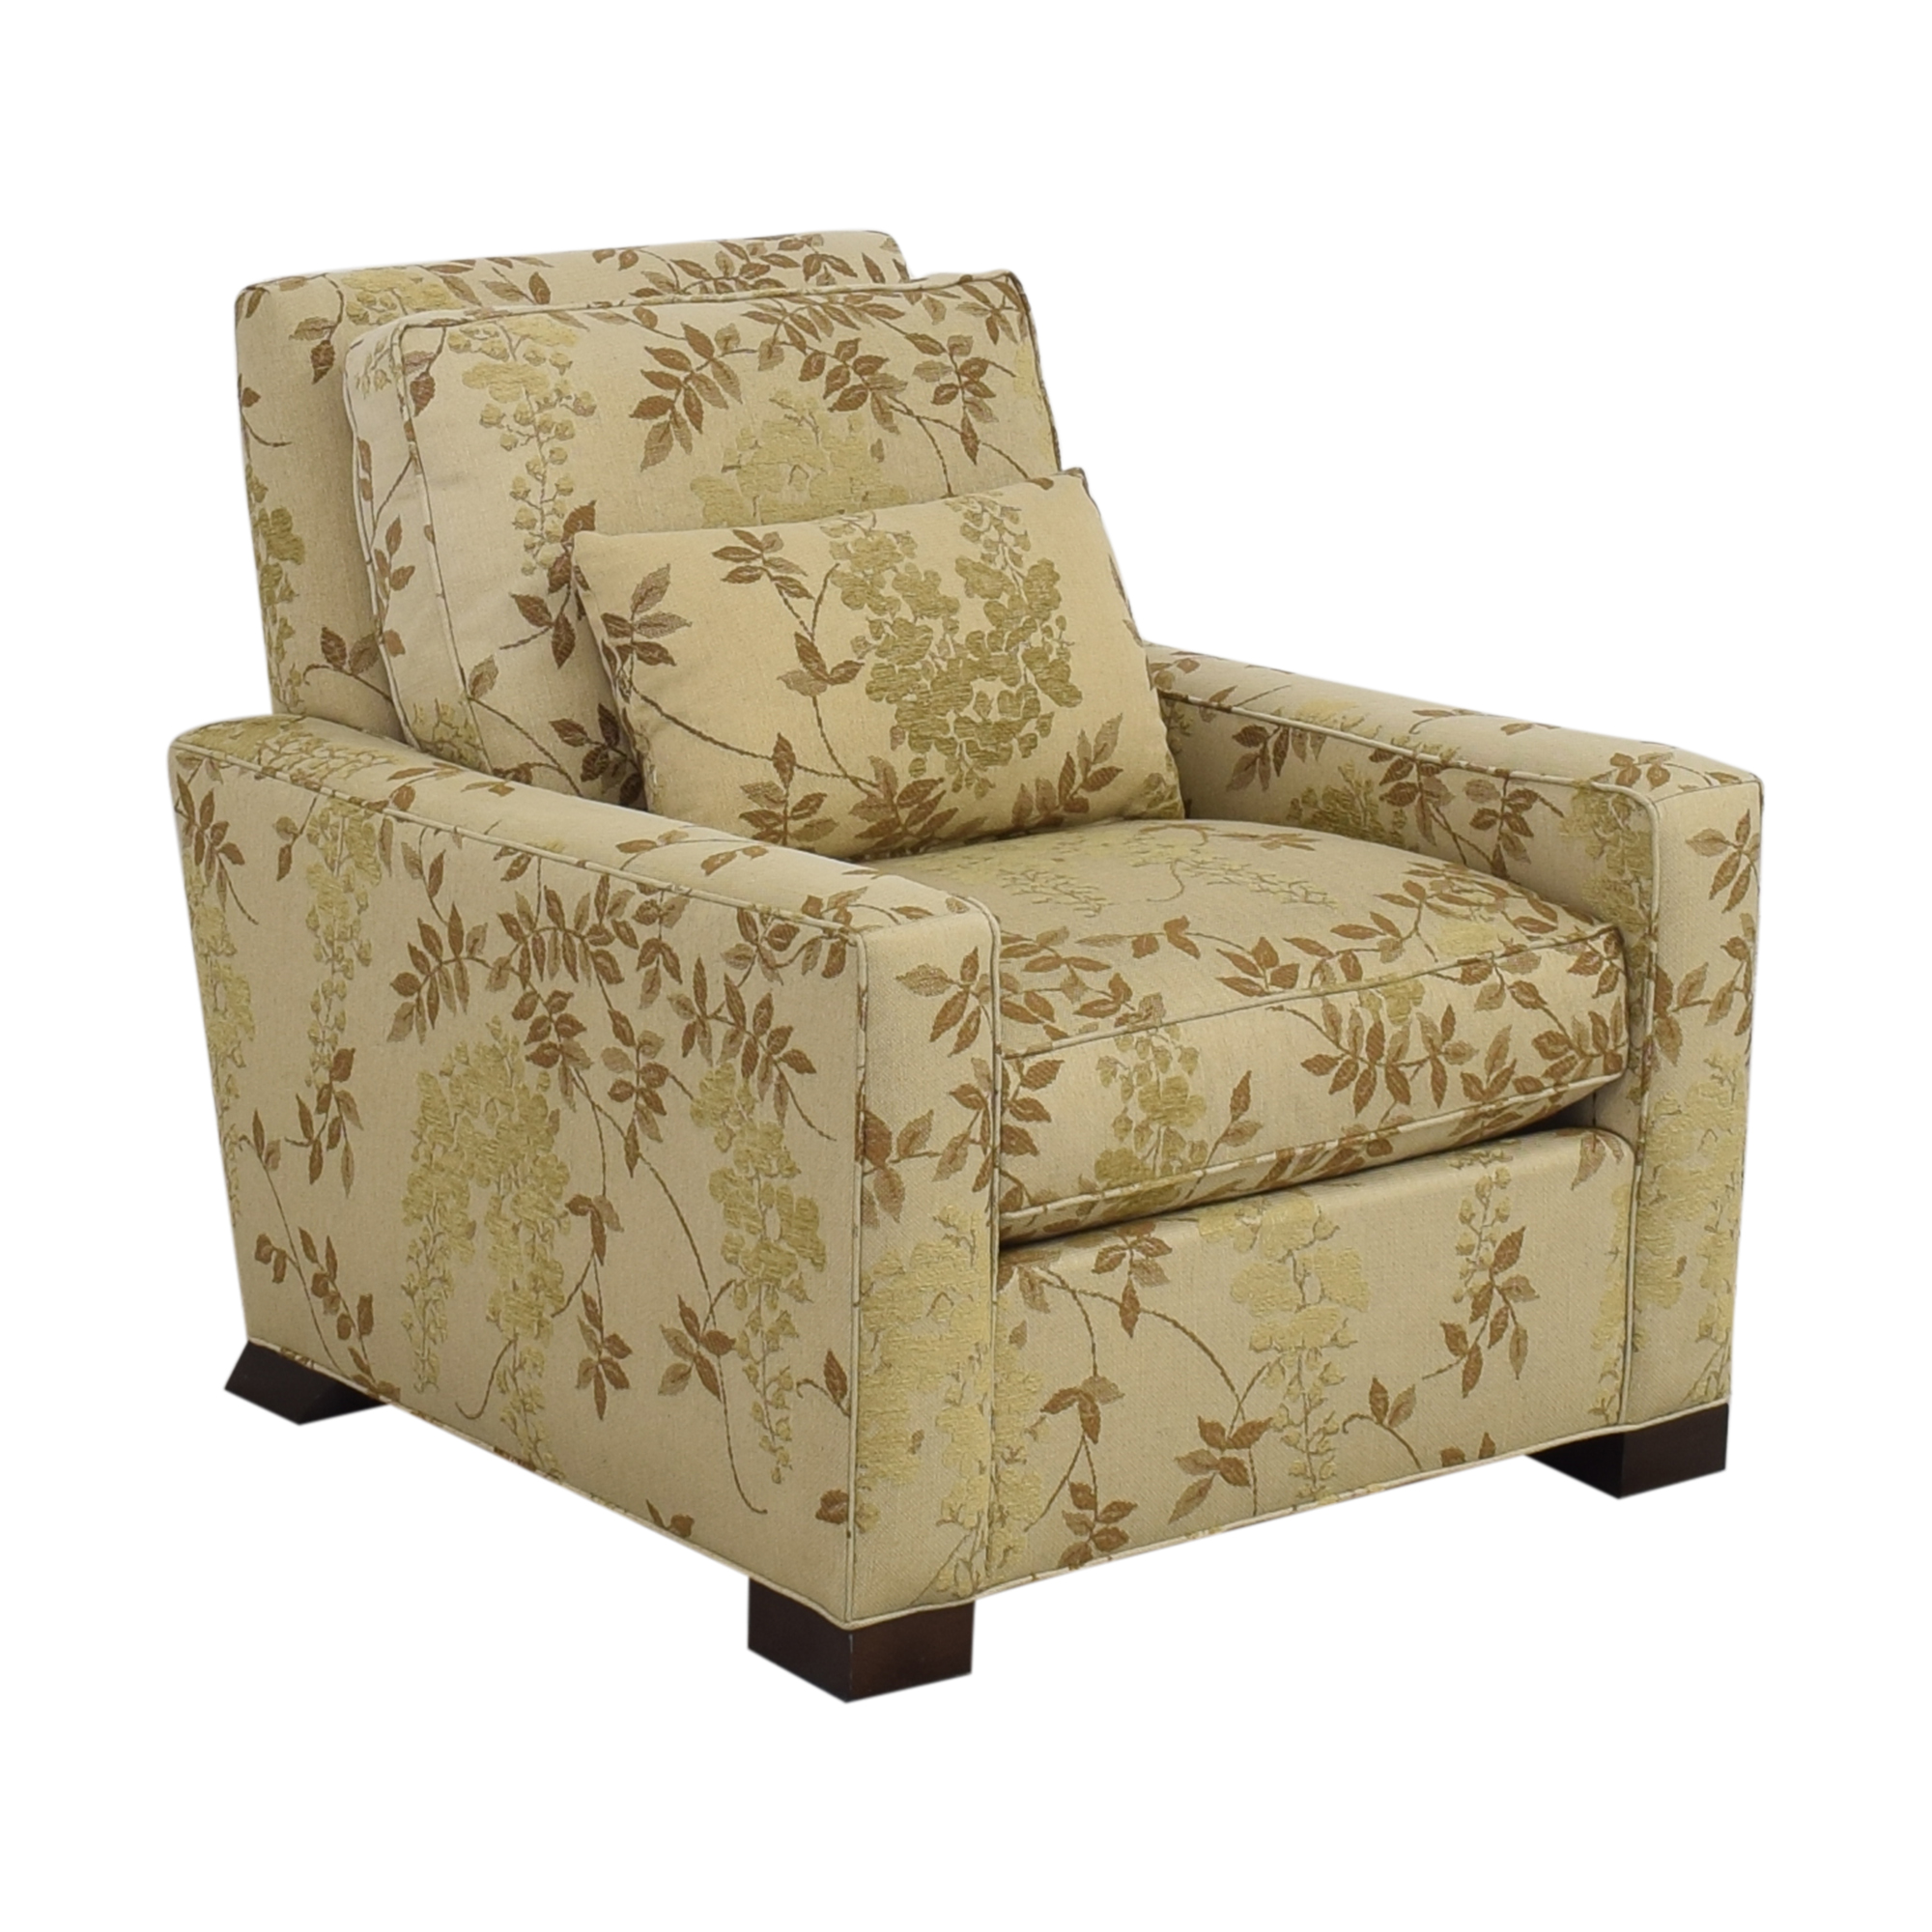 Hickory Chair Hickory Chair Upholstered Club Chair beige, brown